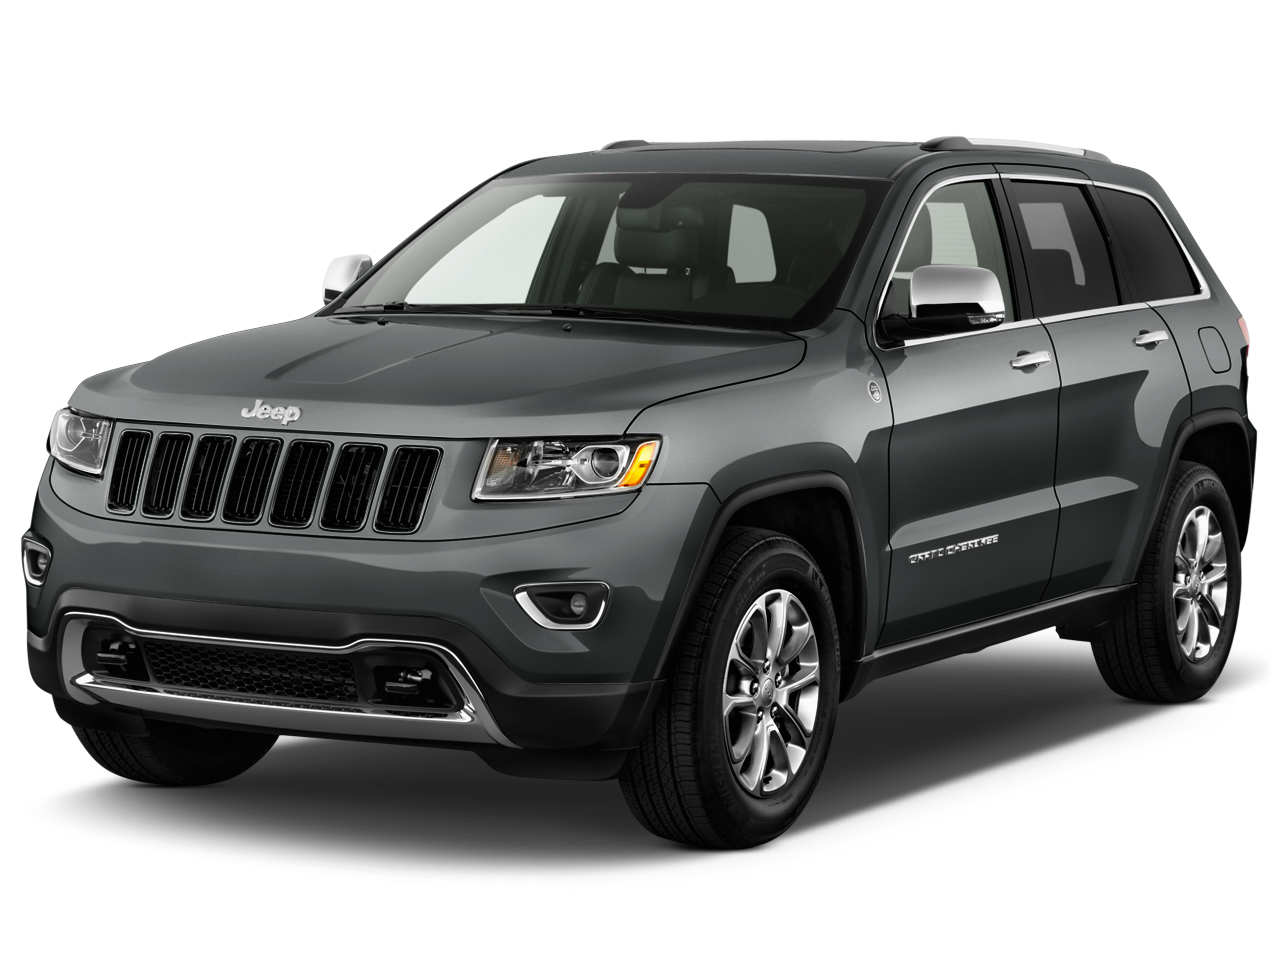 used one owner 2014 jeep grand cherokee 4wd 4dr limited. Black Bedroom Furniture Sets. Home Design Ideas